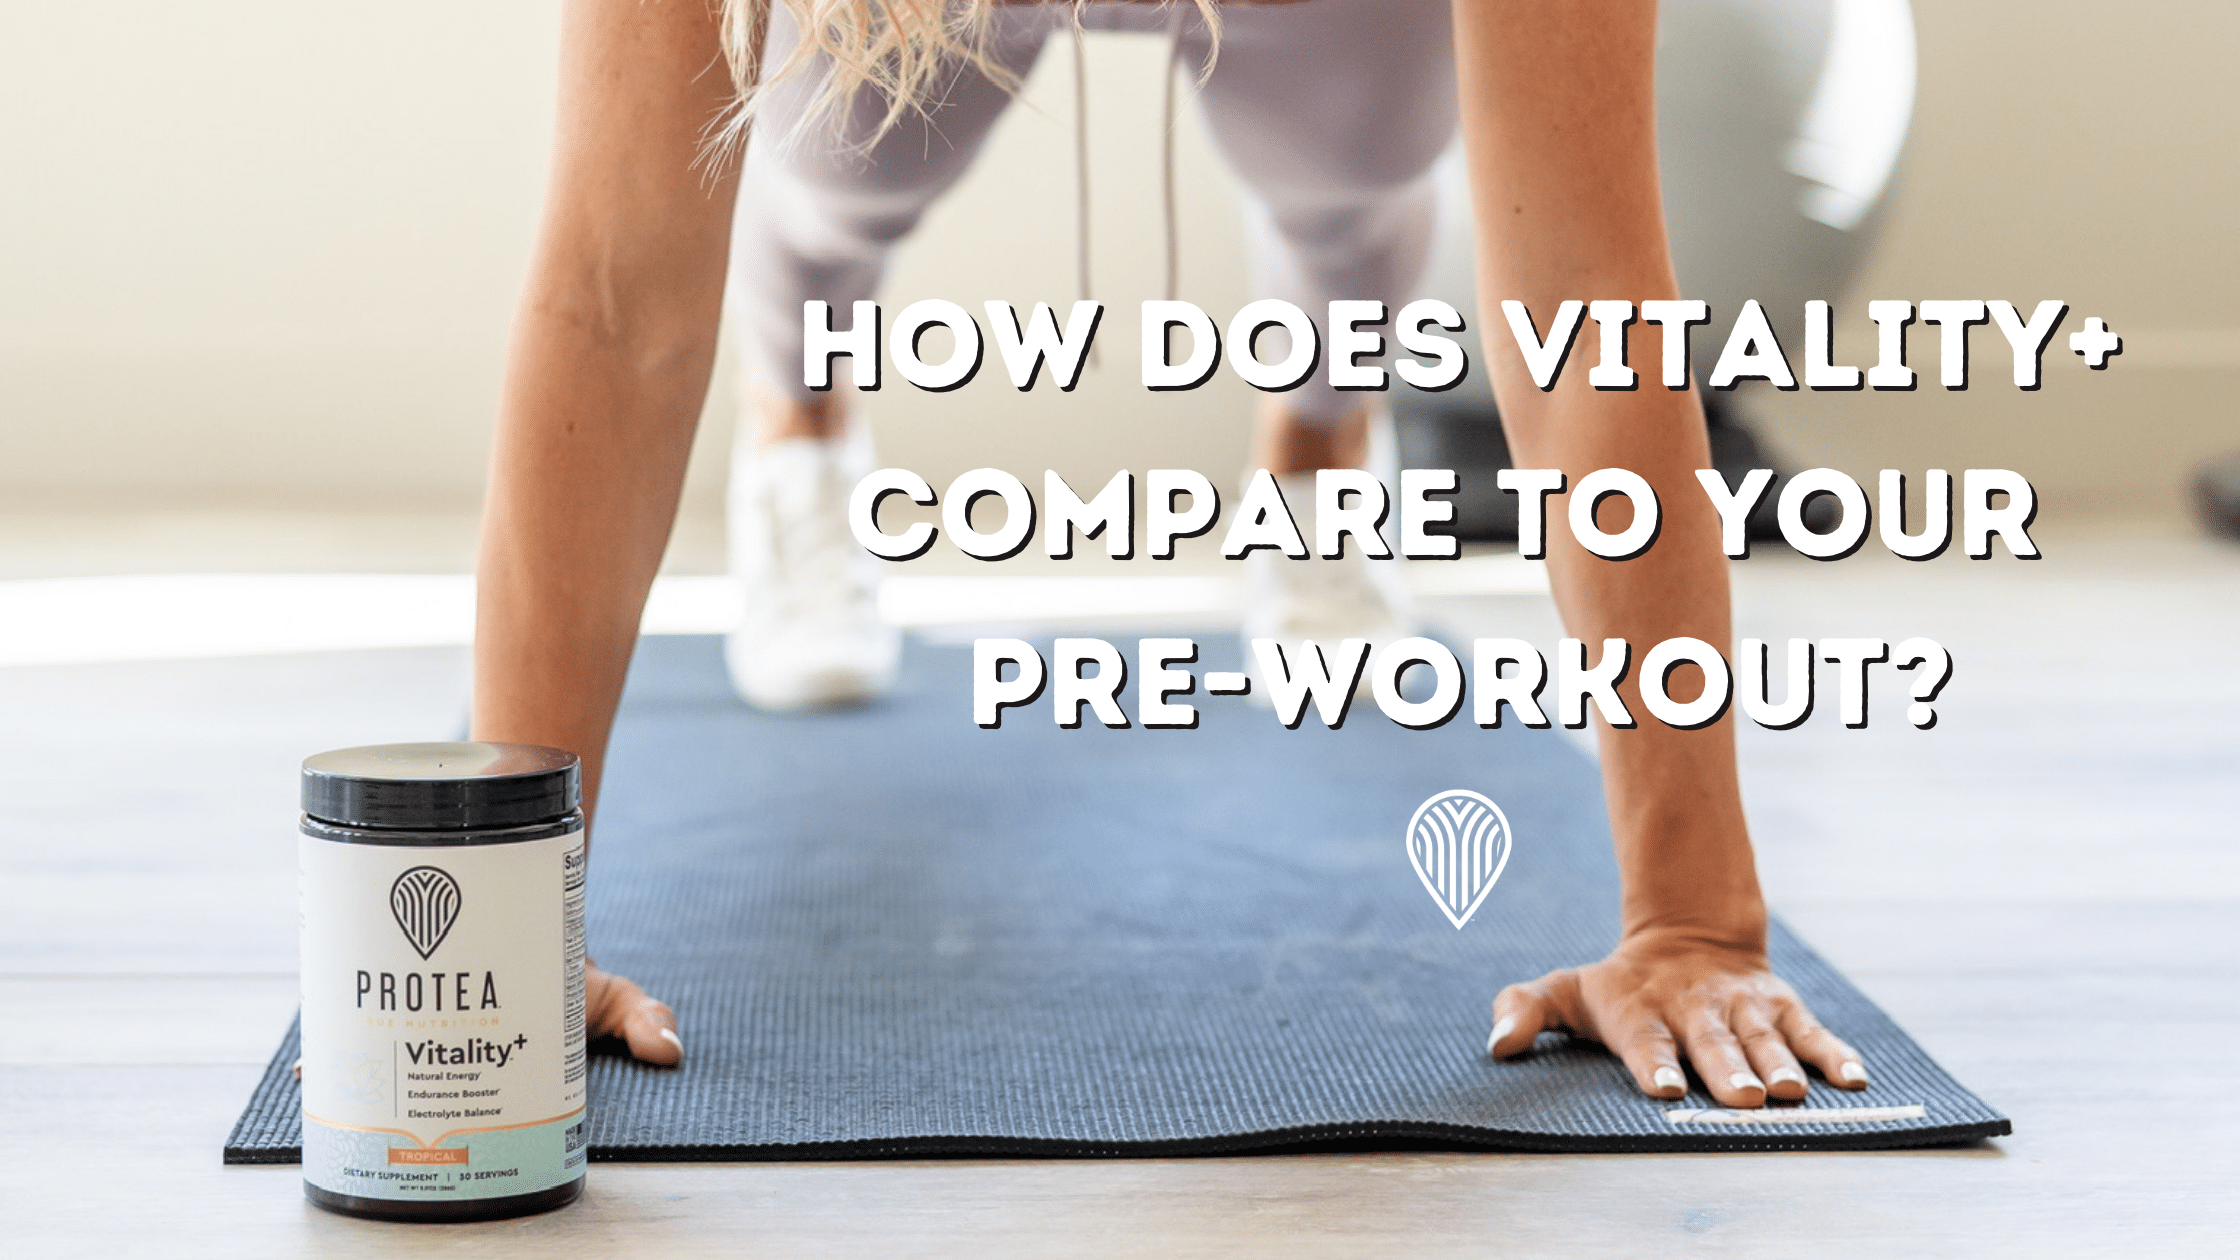 How does vitality+ compare to your pre-workout?